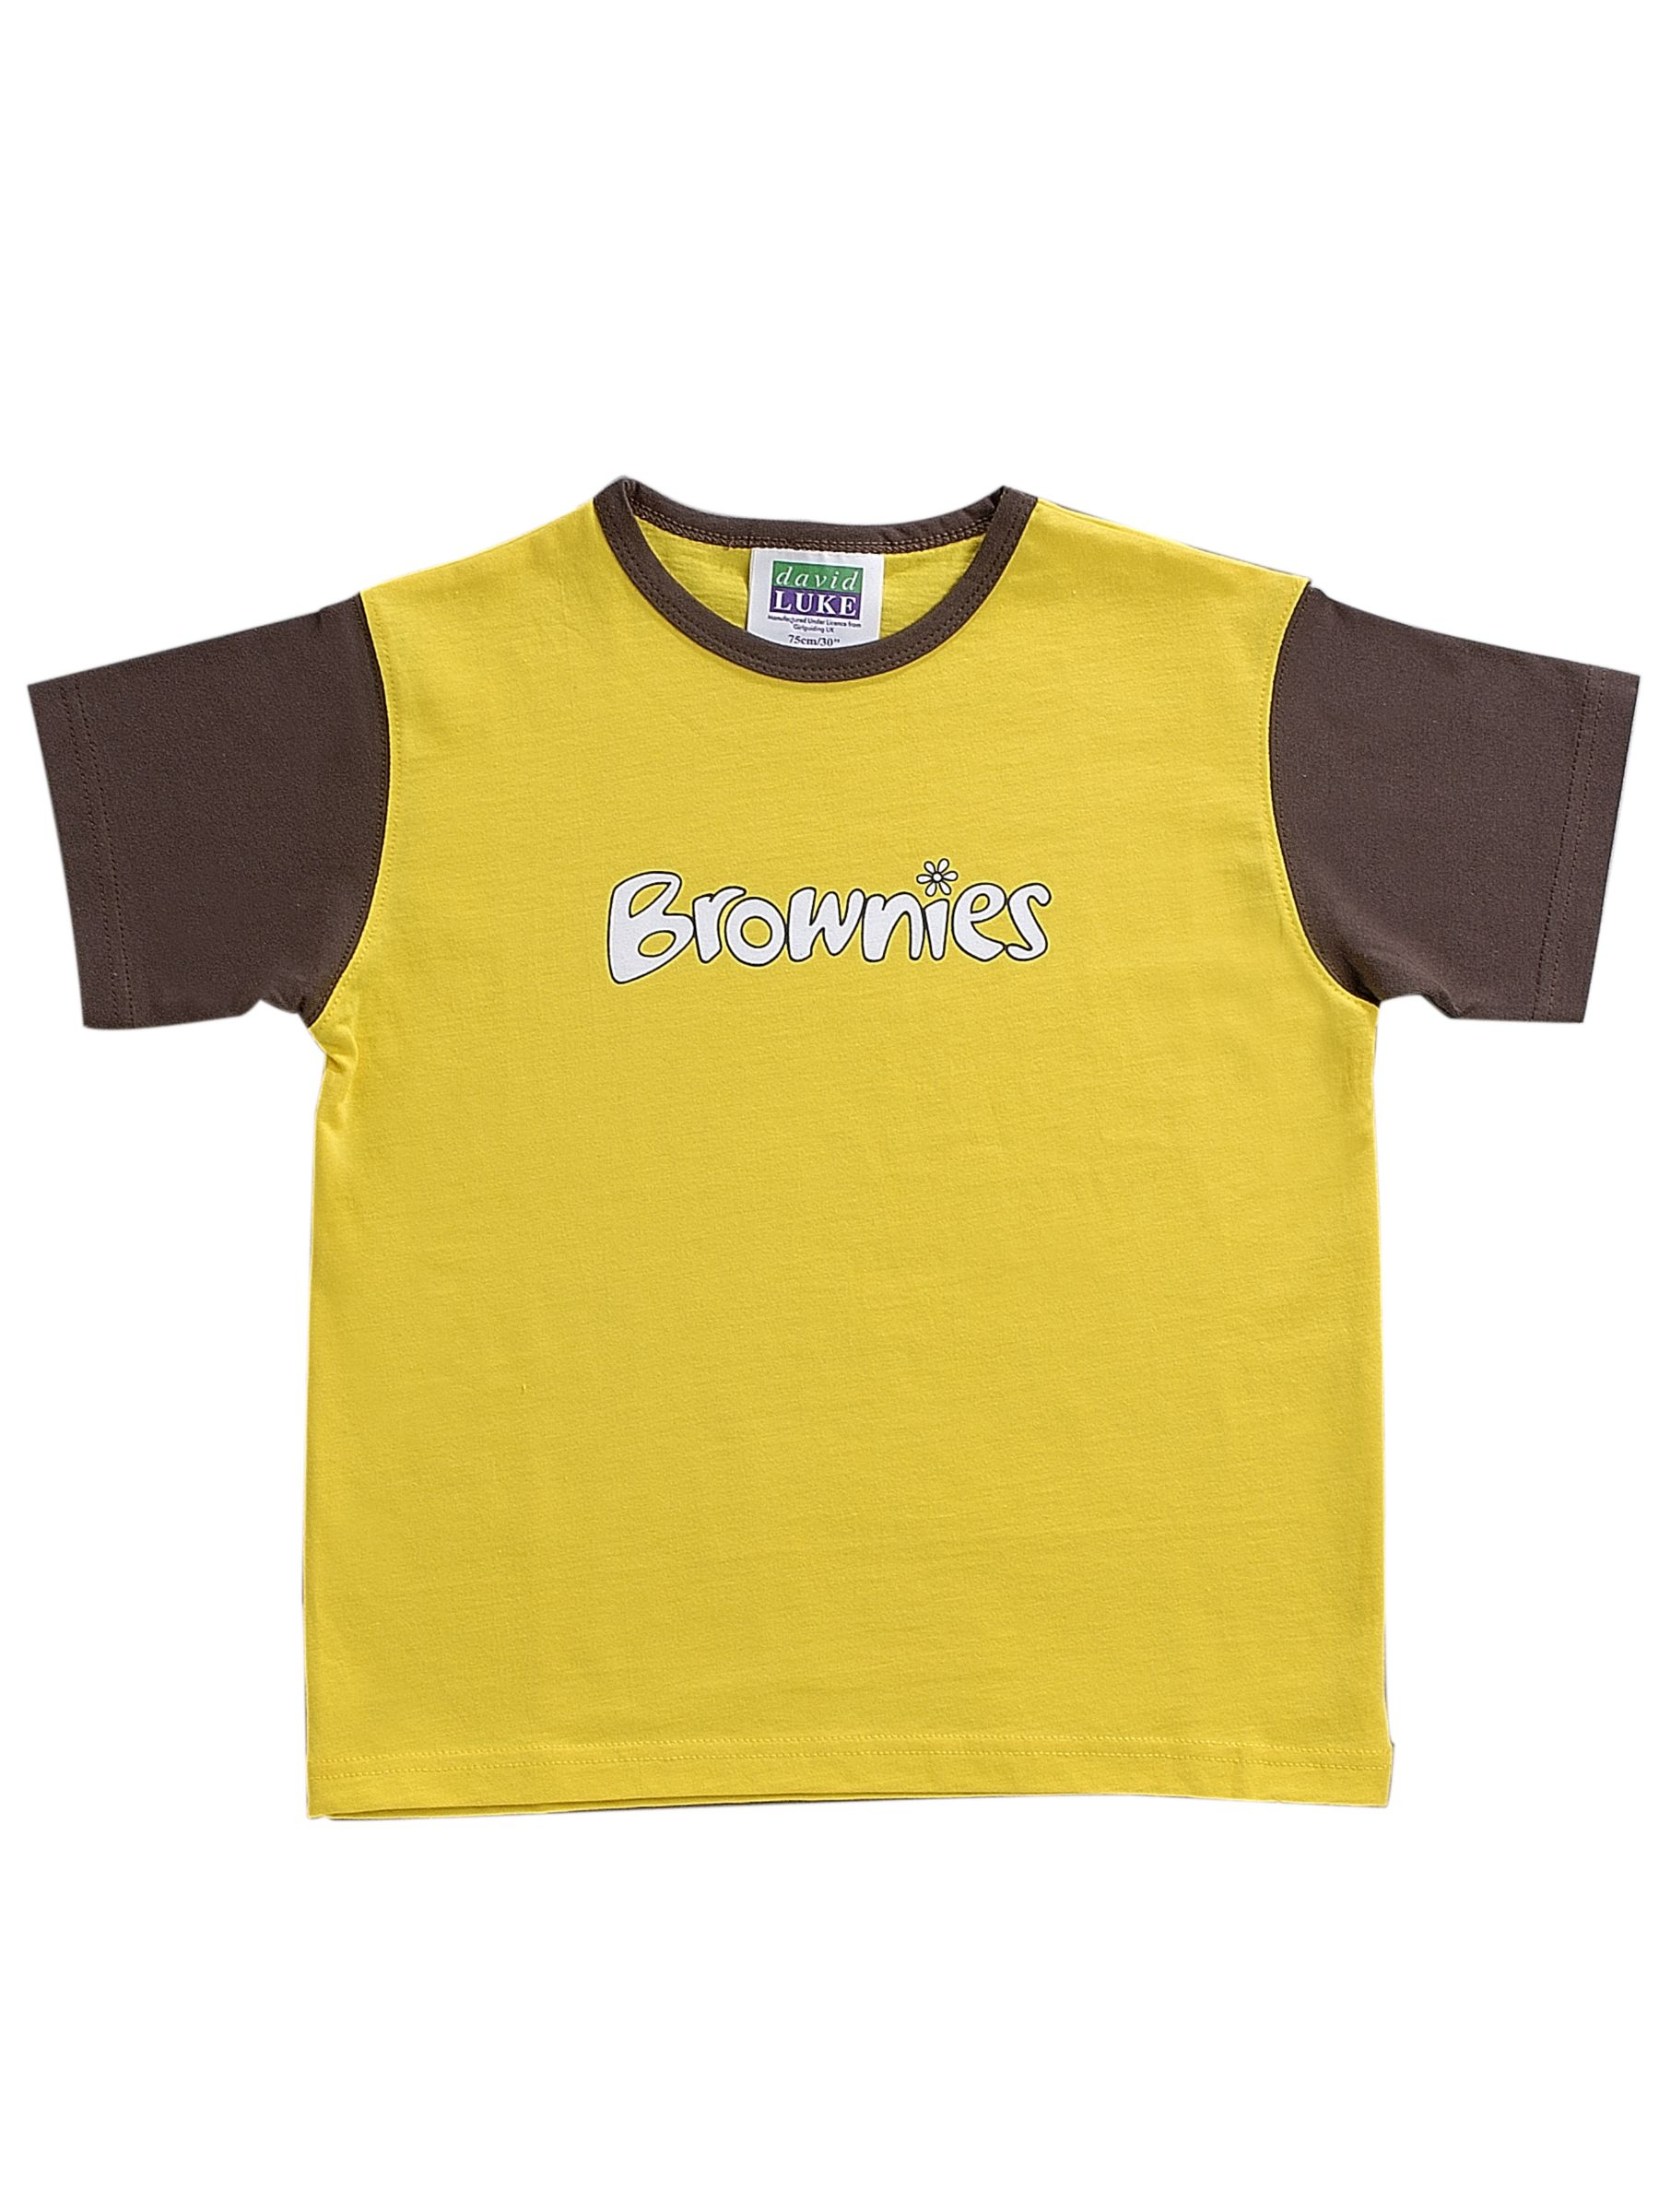 Brownies Brownies Uniform Short Sleeve T-shirt, Yellow/Brown